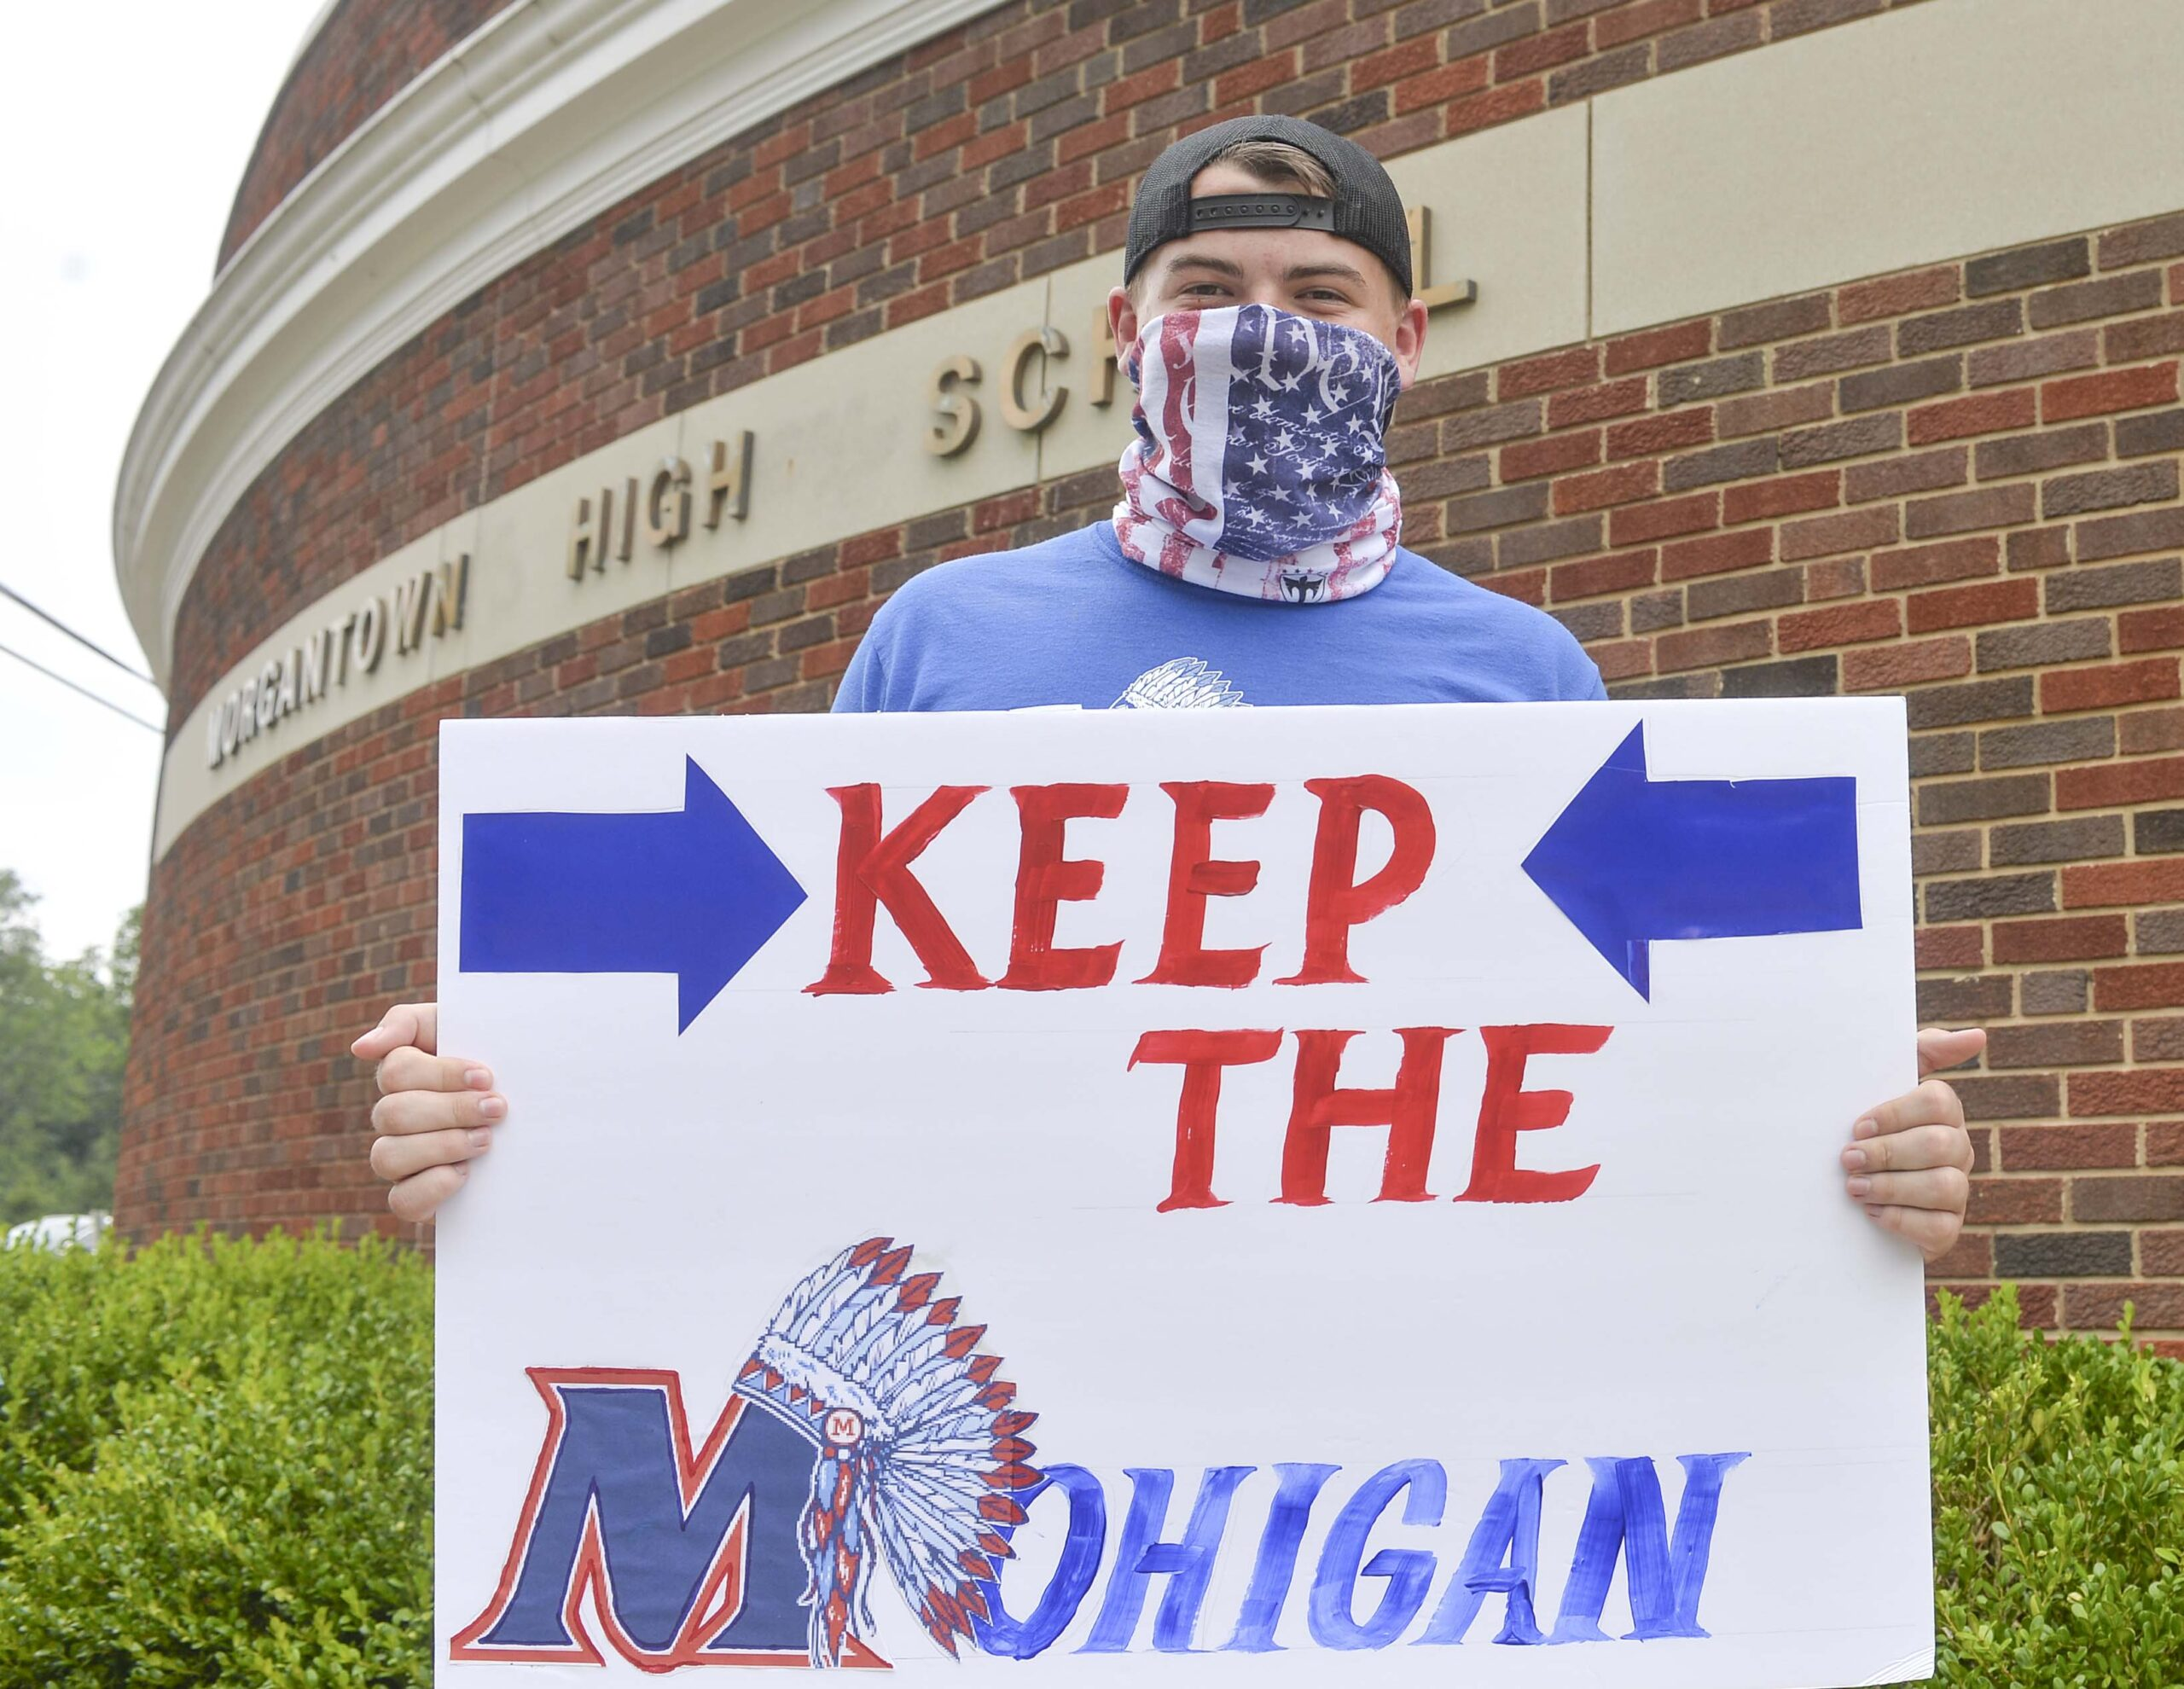 save the mohigan protest